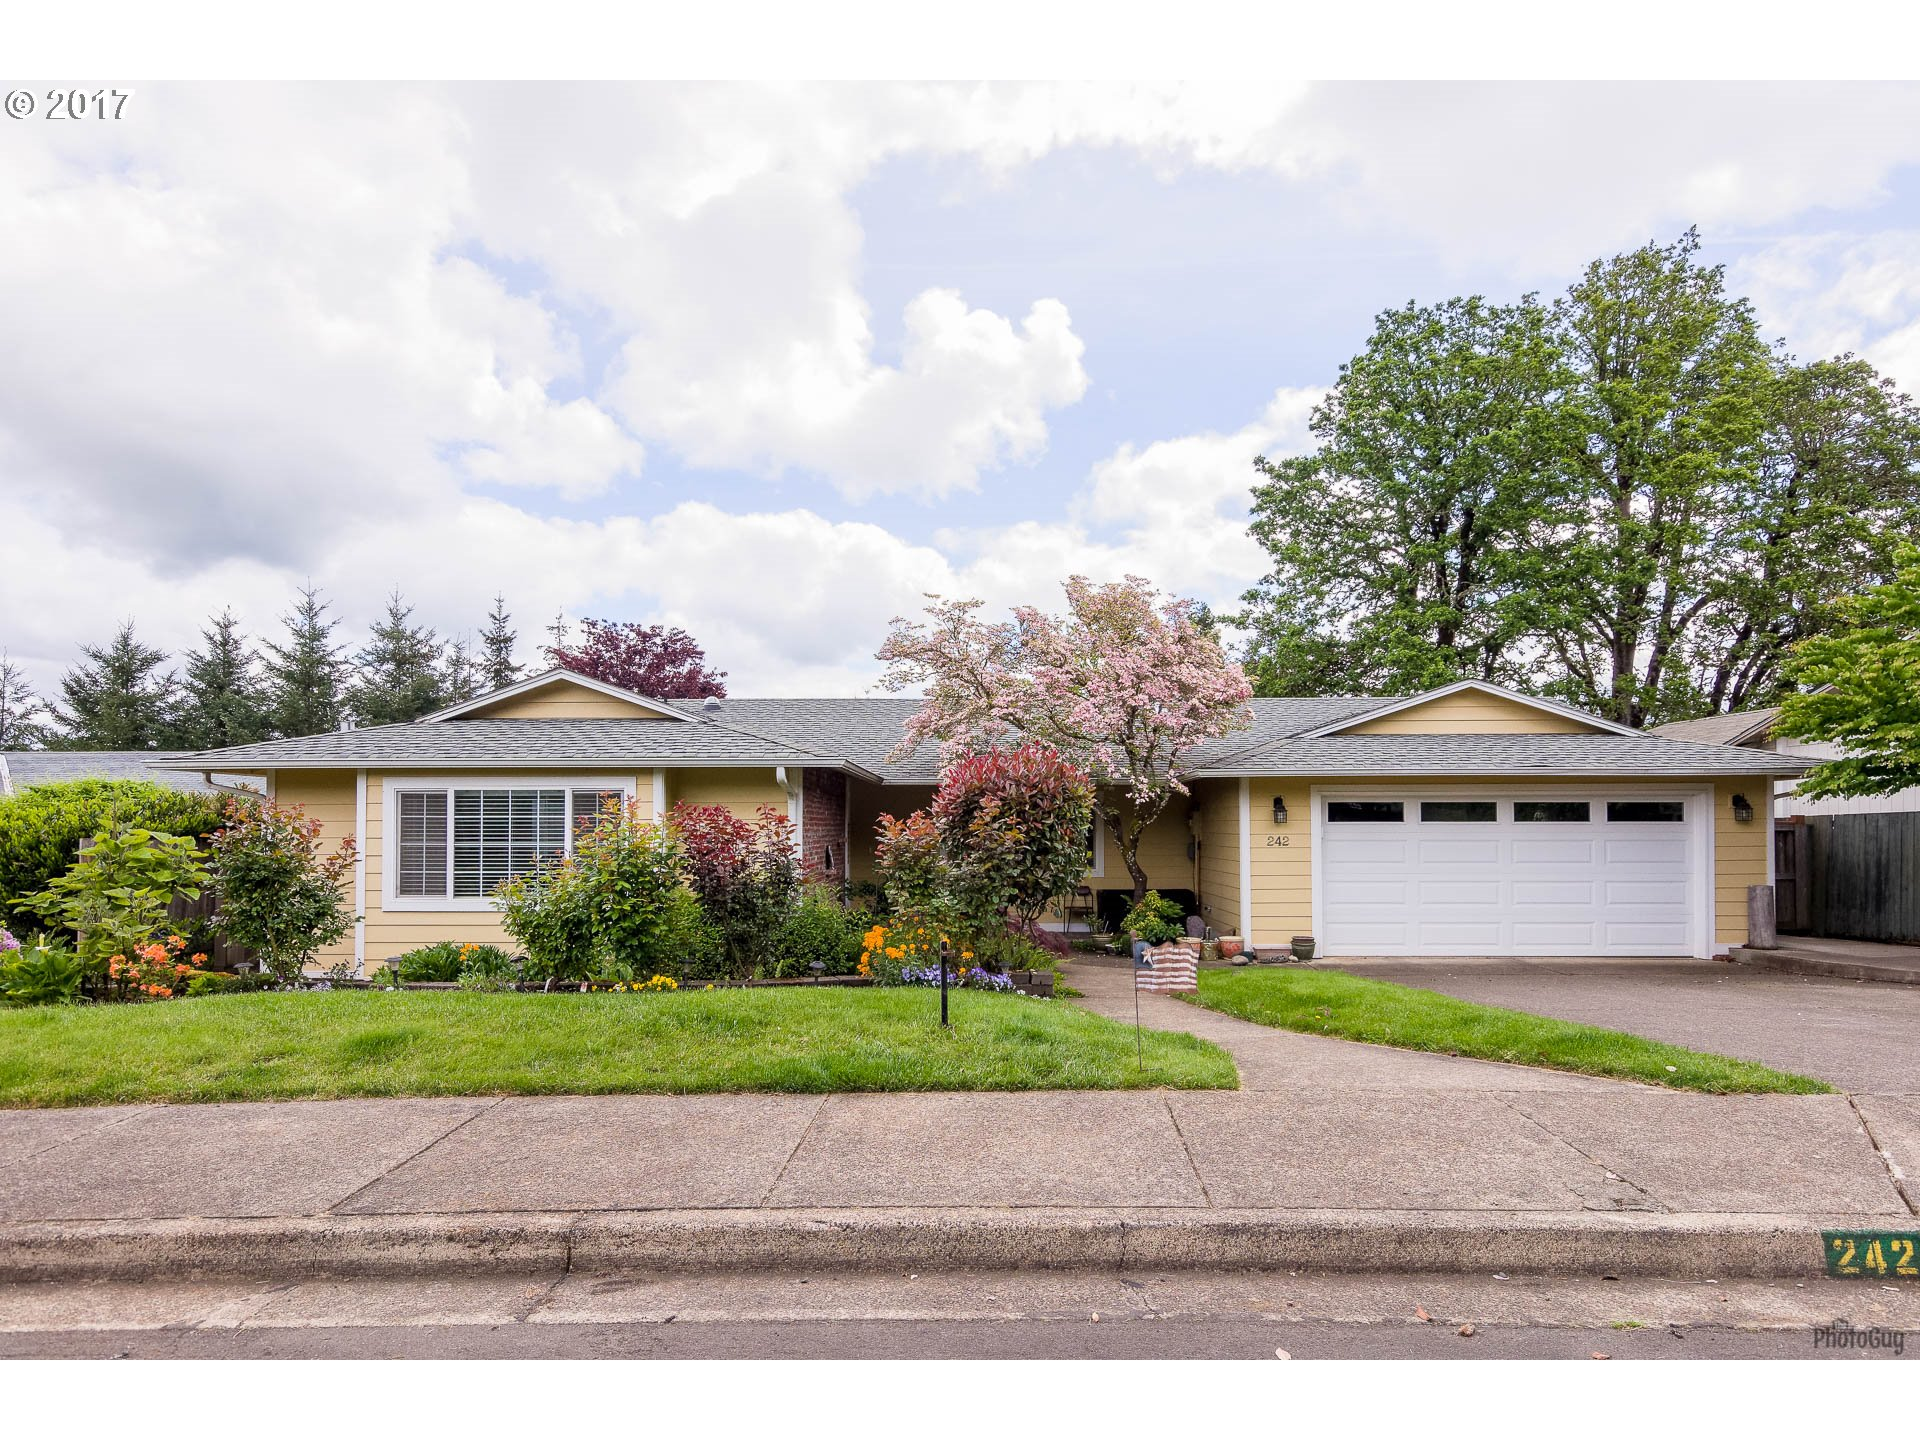 242 S 22ND ST, Cottage Grove, OR 97424